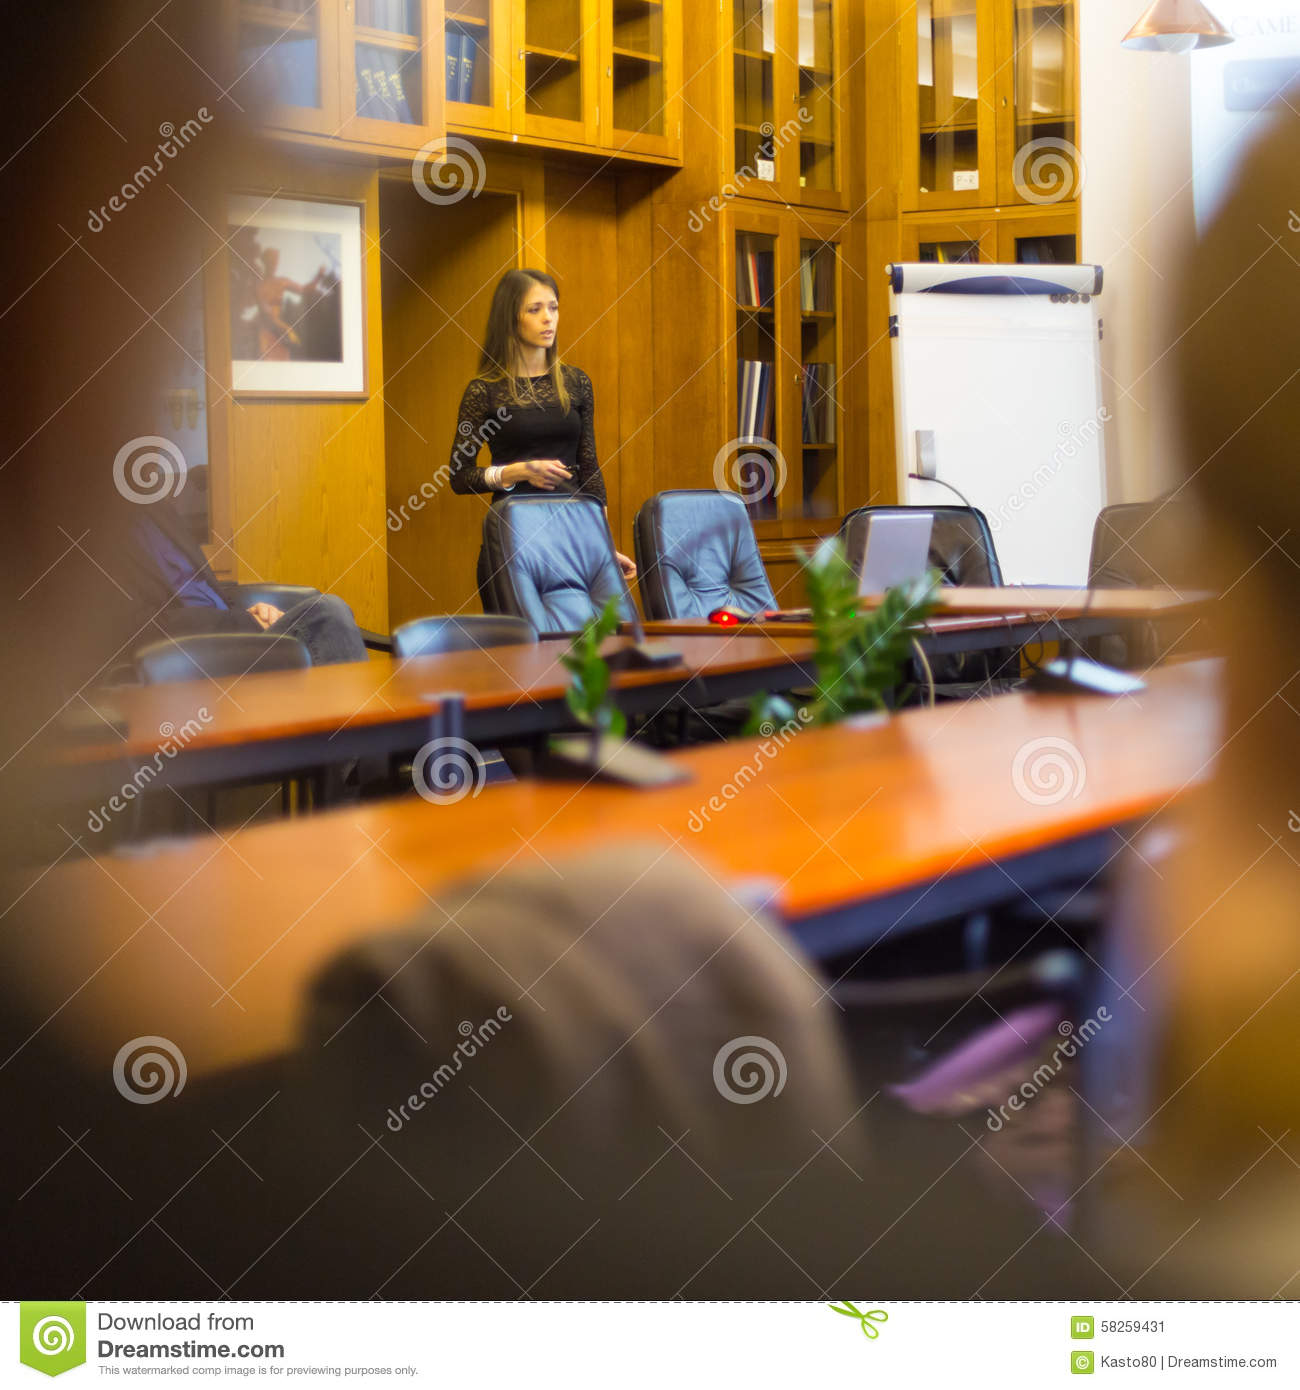 front office and human resource Function of job: under supervision of designated supervisor, to coordinate and supervise the reserving and renting of rooms for transients and group residential conferences at a hotel or other residence facility associated with the college/university and to oversee the night auditing function.